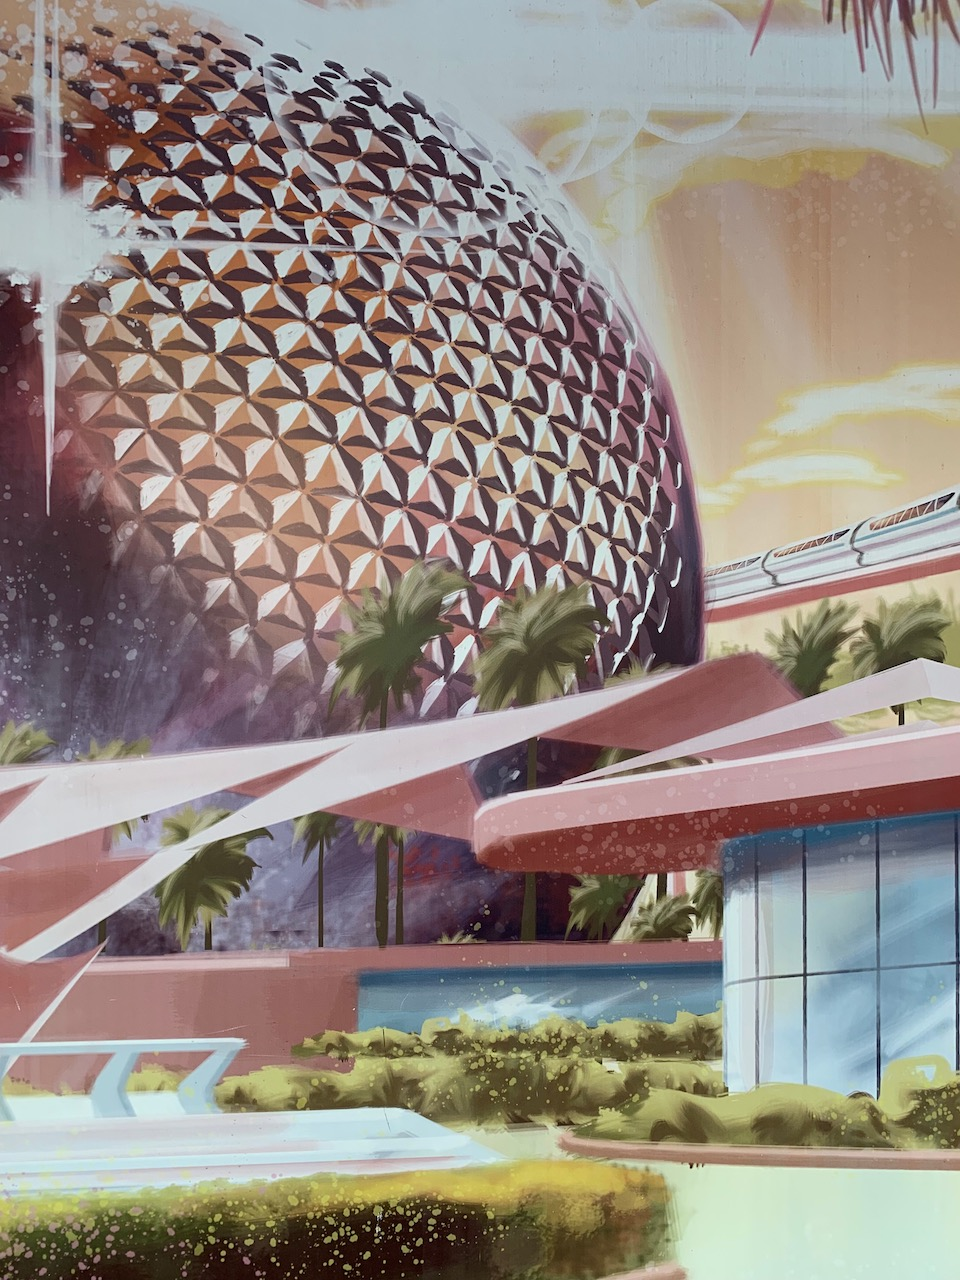 spaceship earth.jpeg